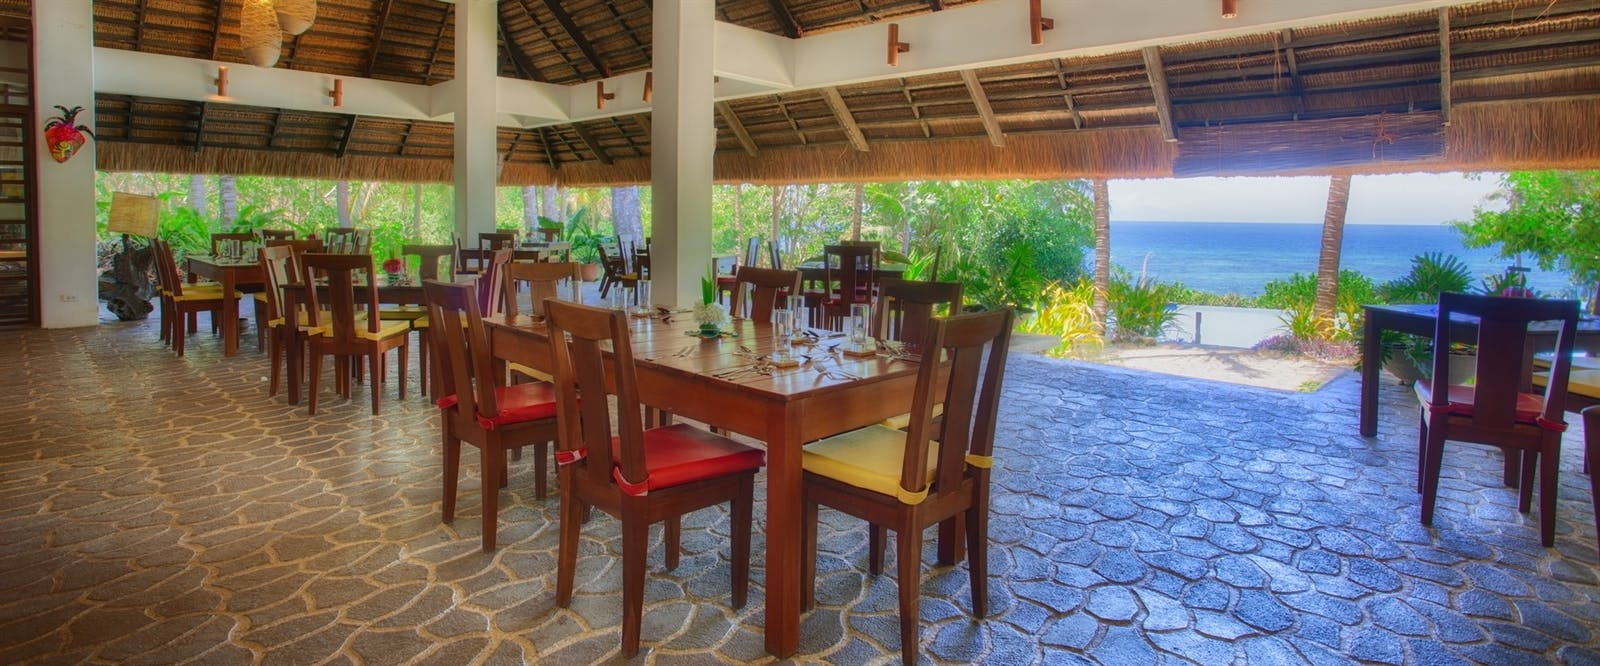 Dining With A View at Amun Ini Beach Resort & Spa, Philippines